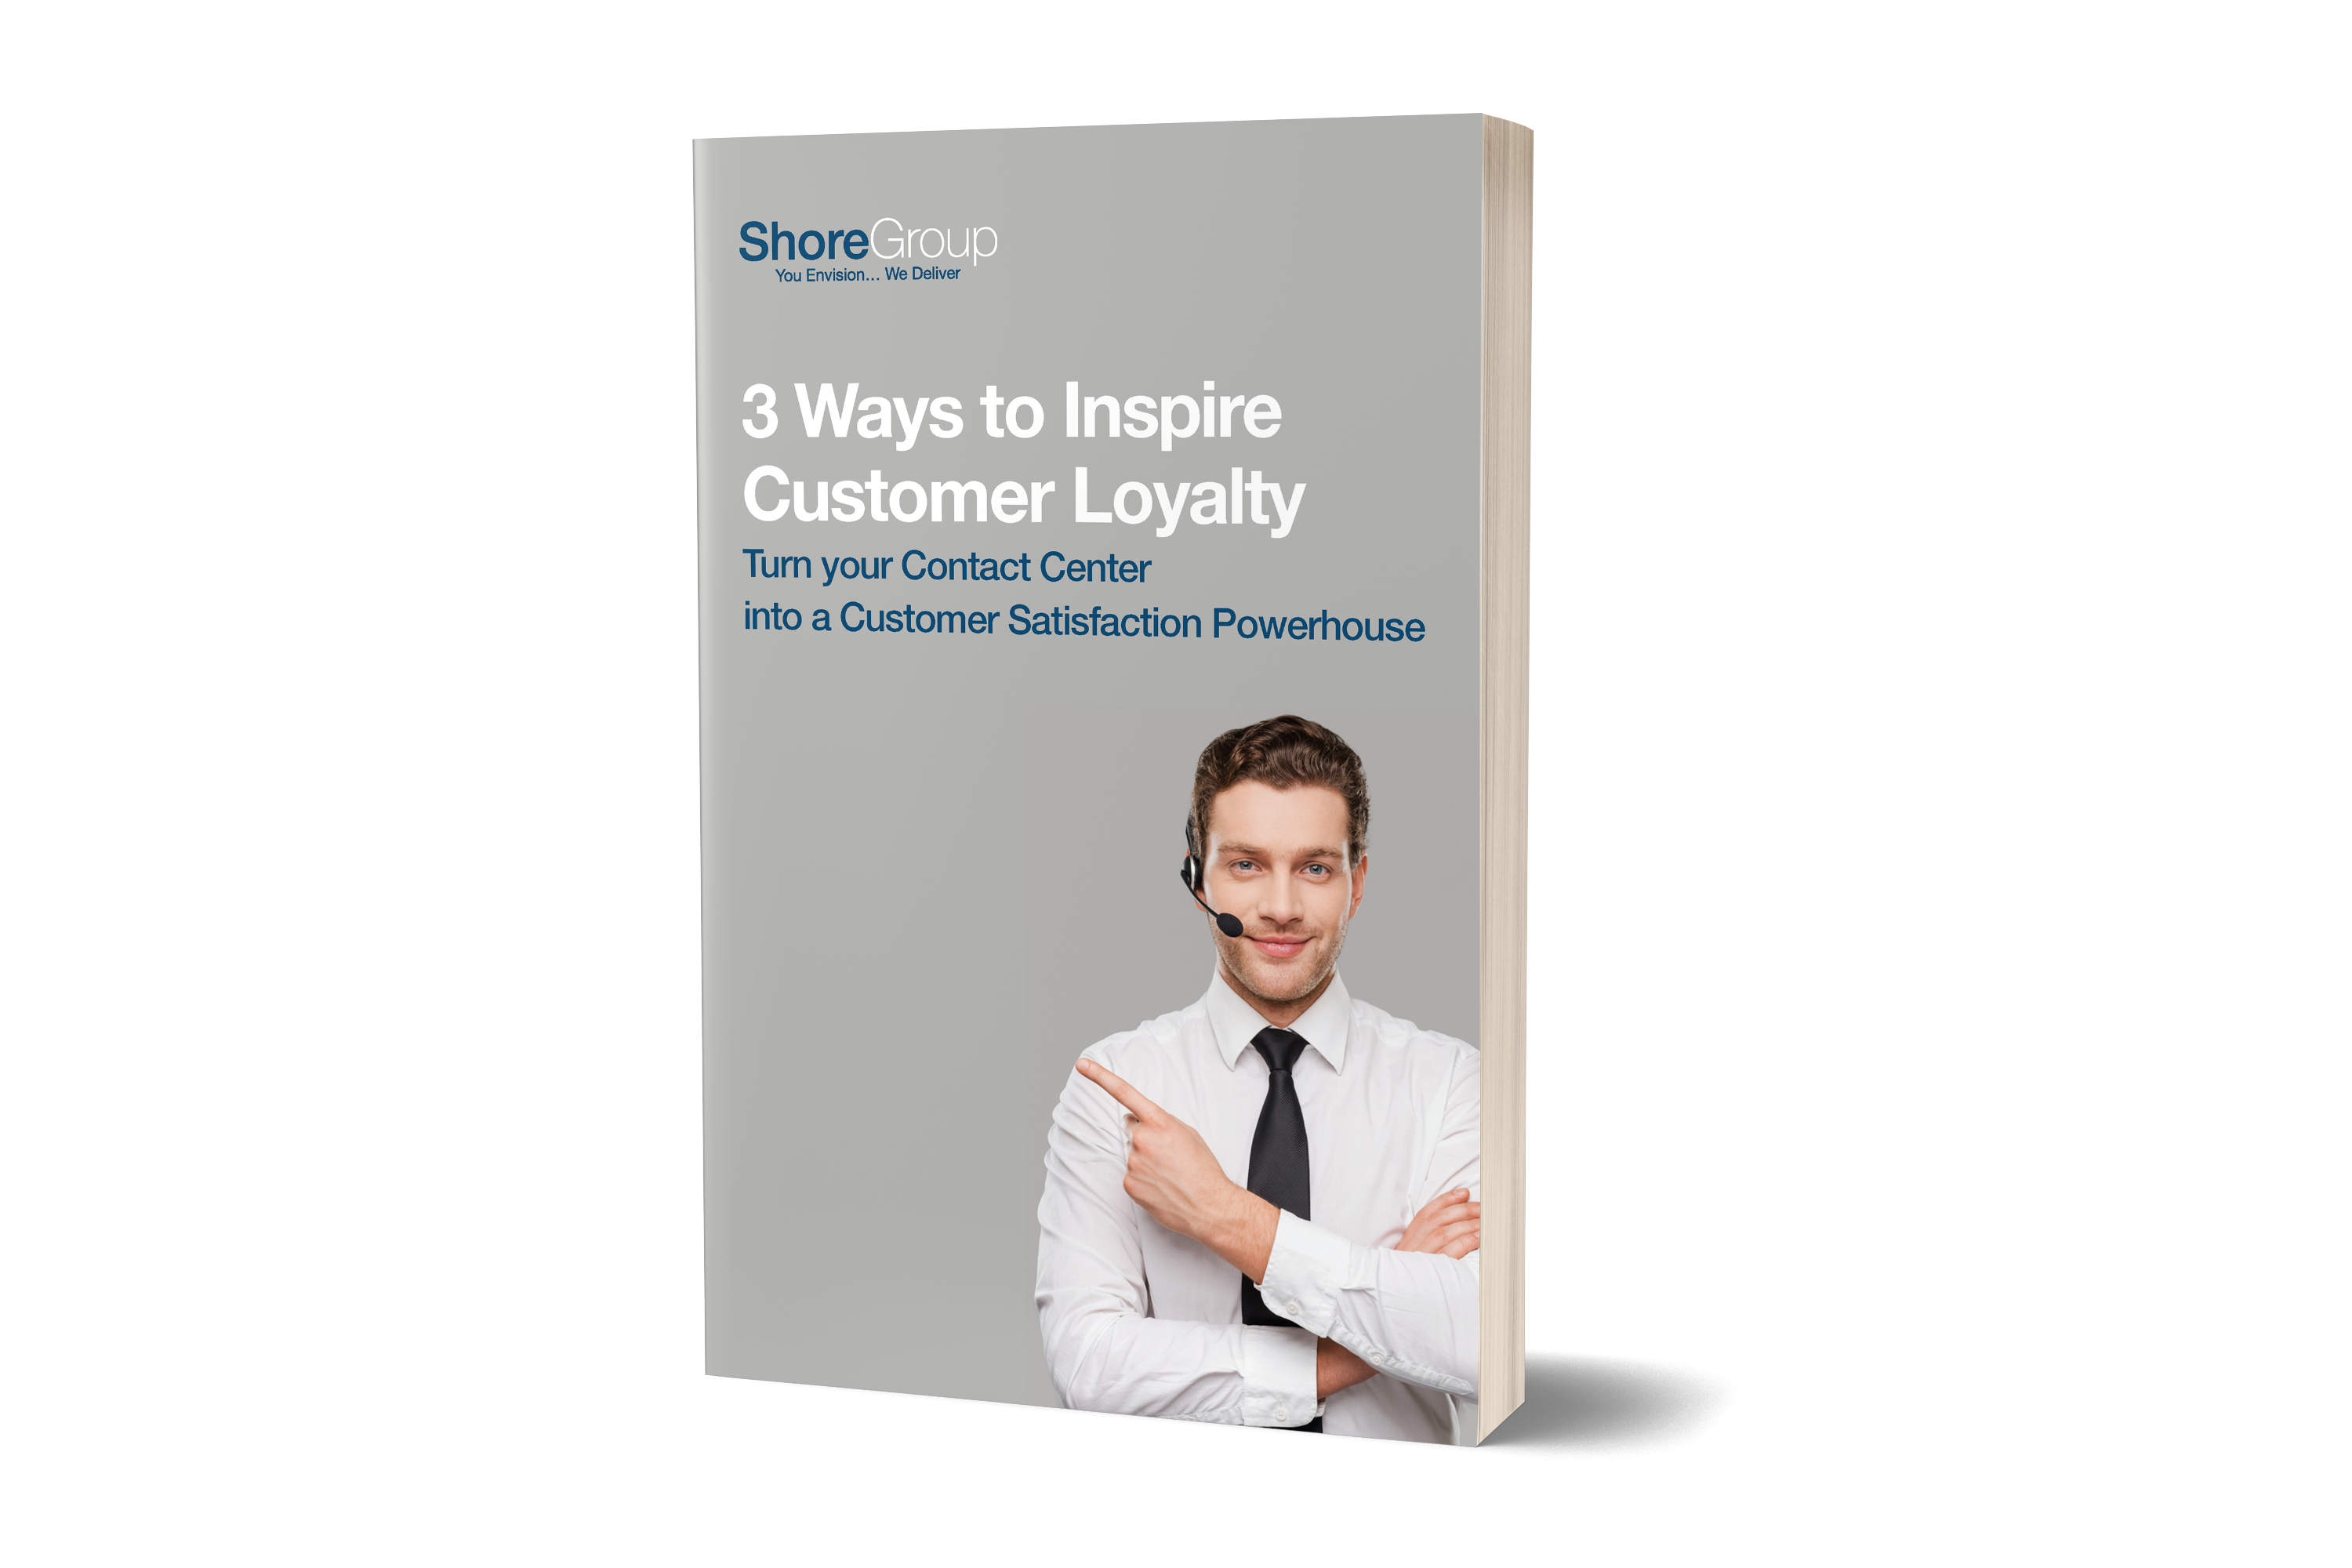 Three Ways to Inspire Customer Loyalty 3D Image